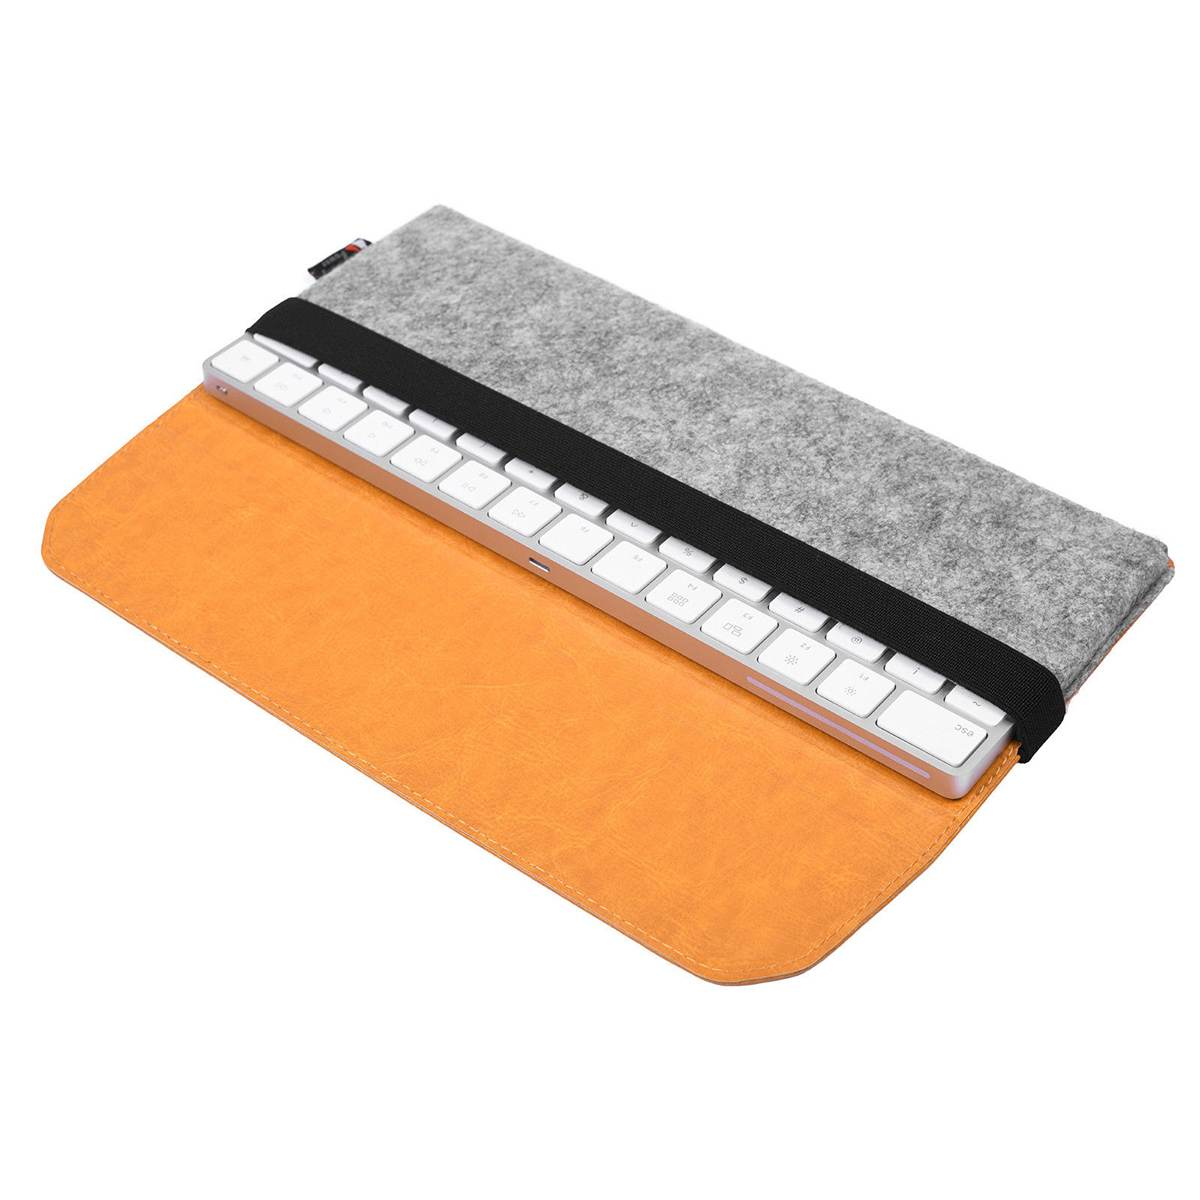 Protective Storage Case Shell Bag PU Leather Protection Sleeve Case Storage Bag For Apple Magic Keyboard